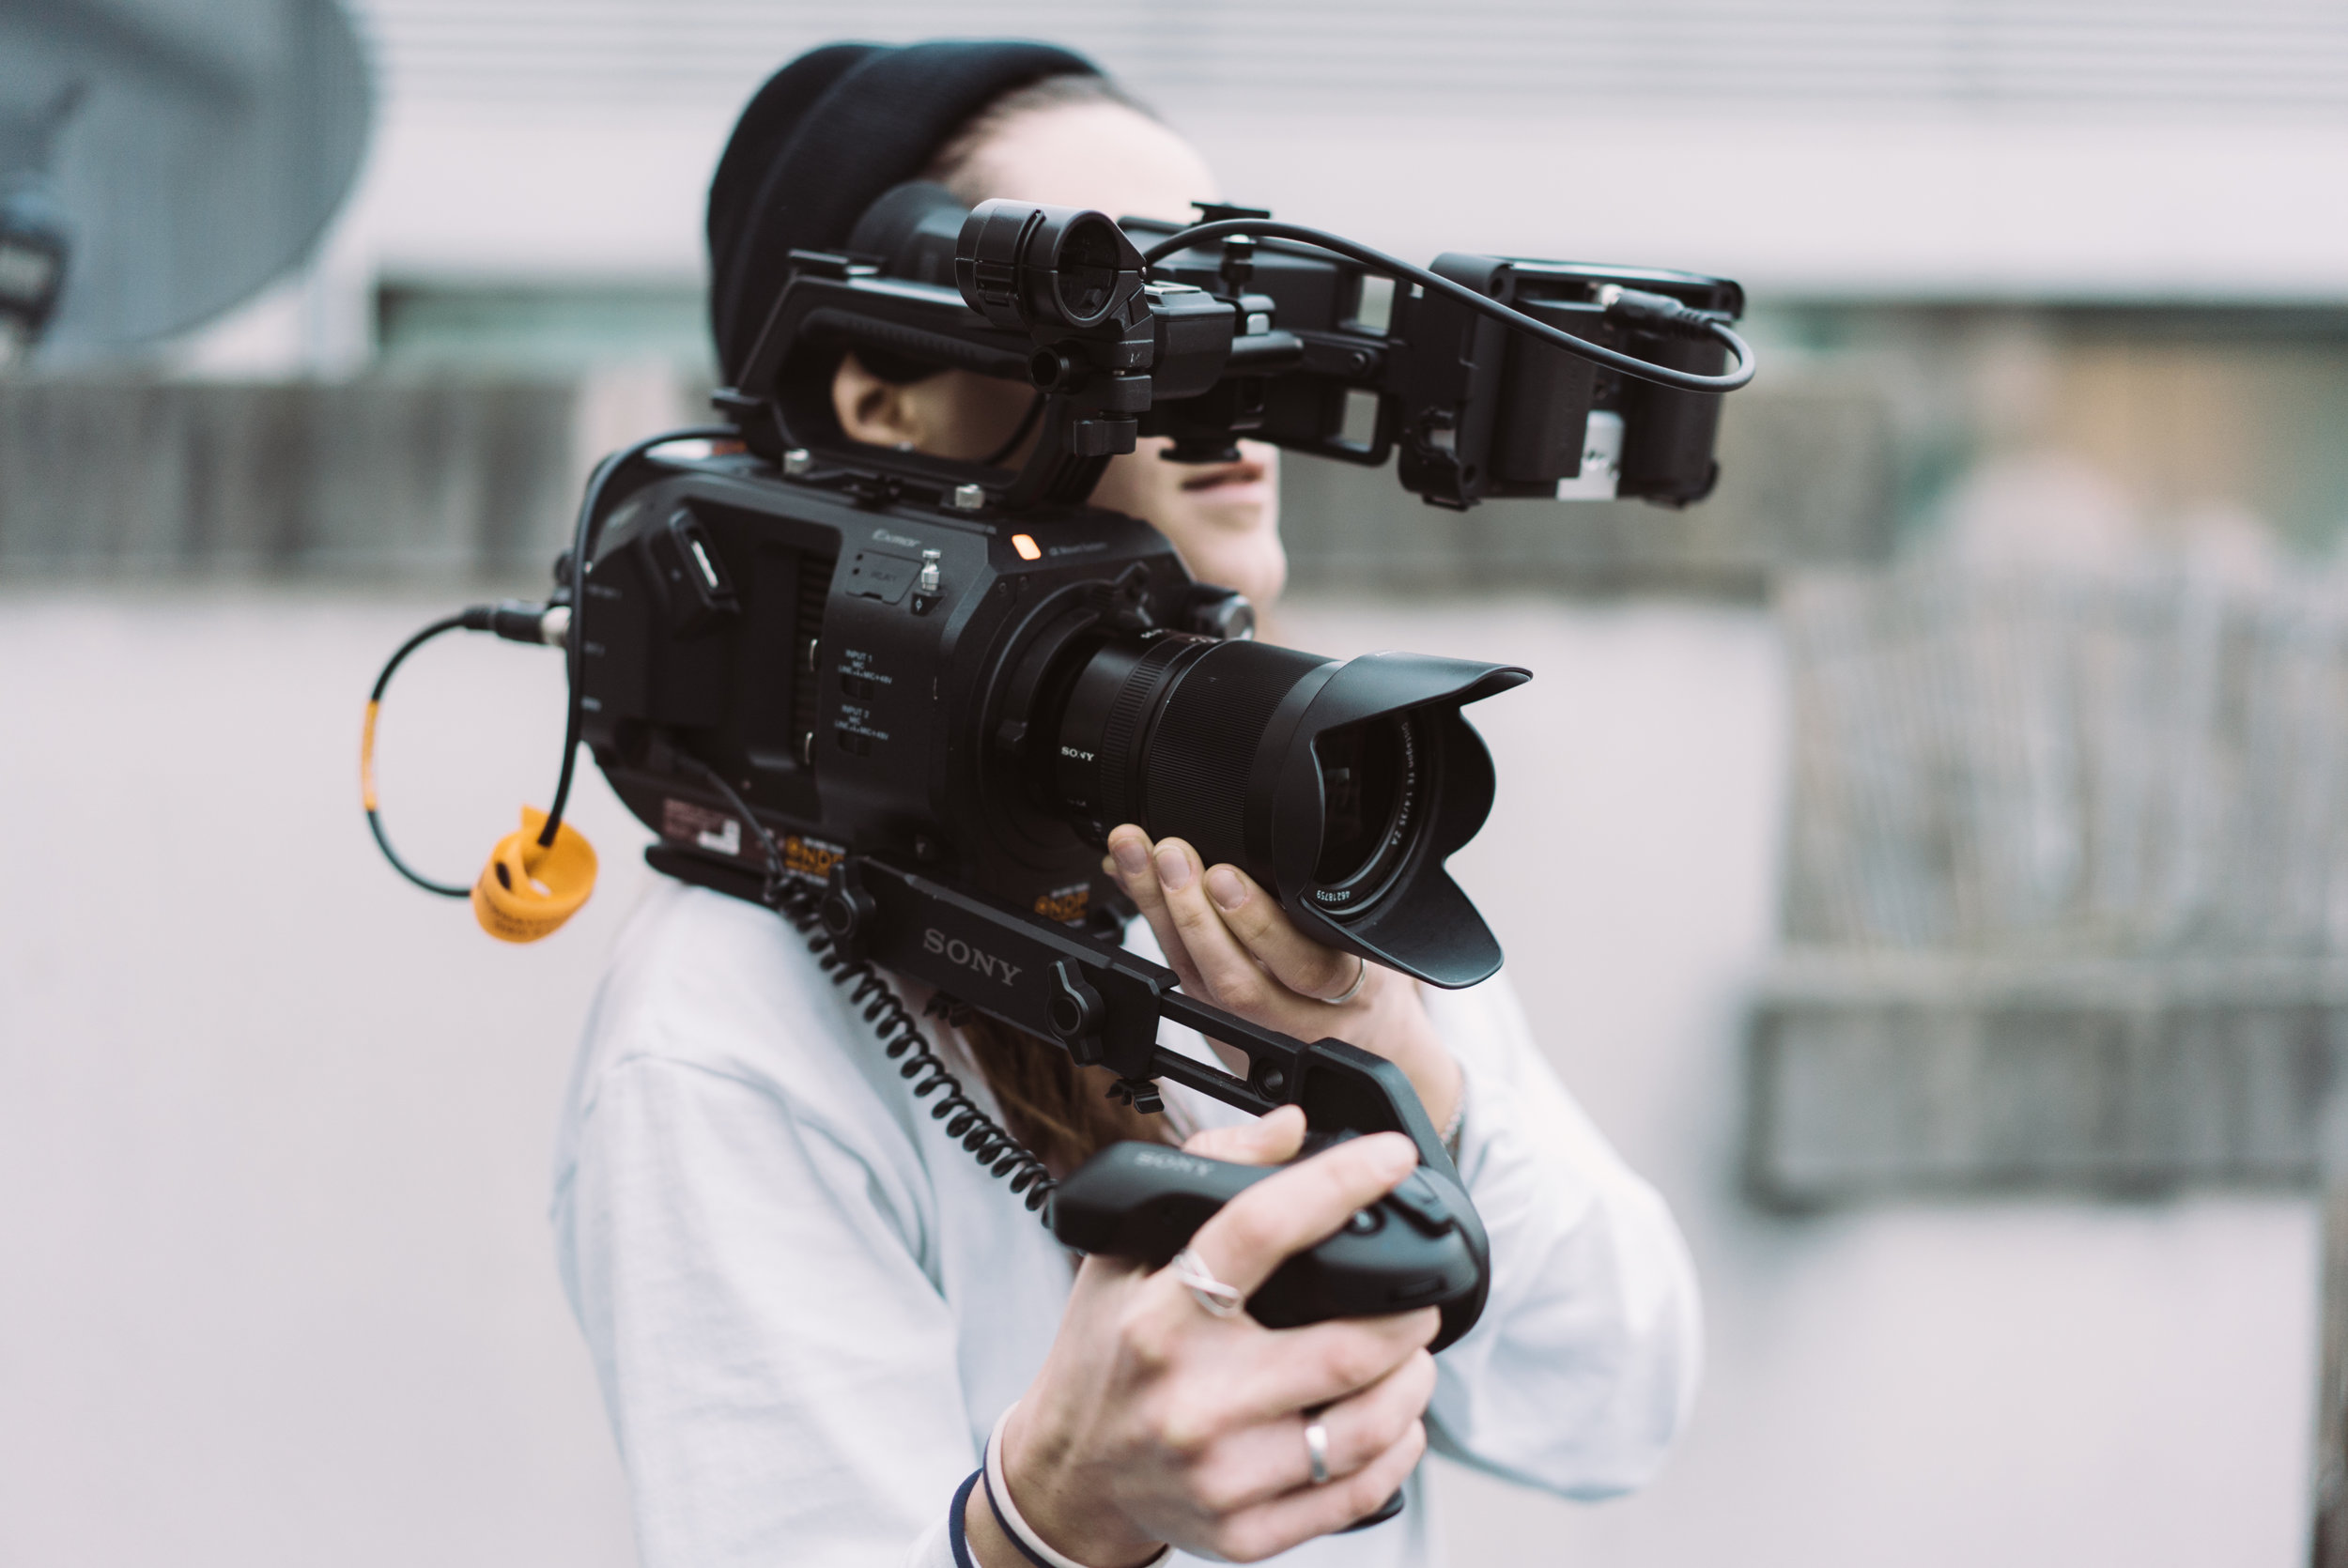 Max Anstruther - %22Come%22 - Music Video BTS - 27.01.18 (16 of 63).jpg